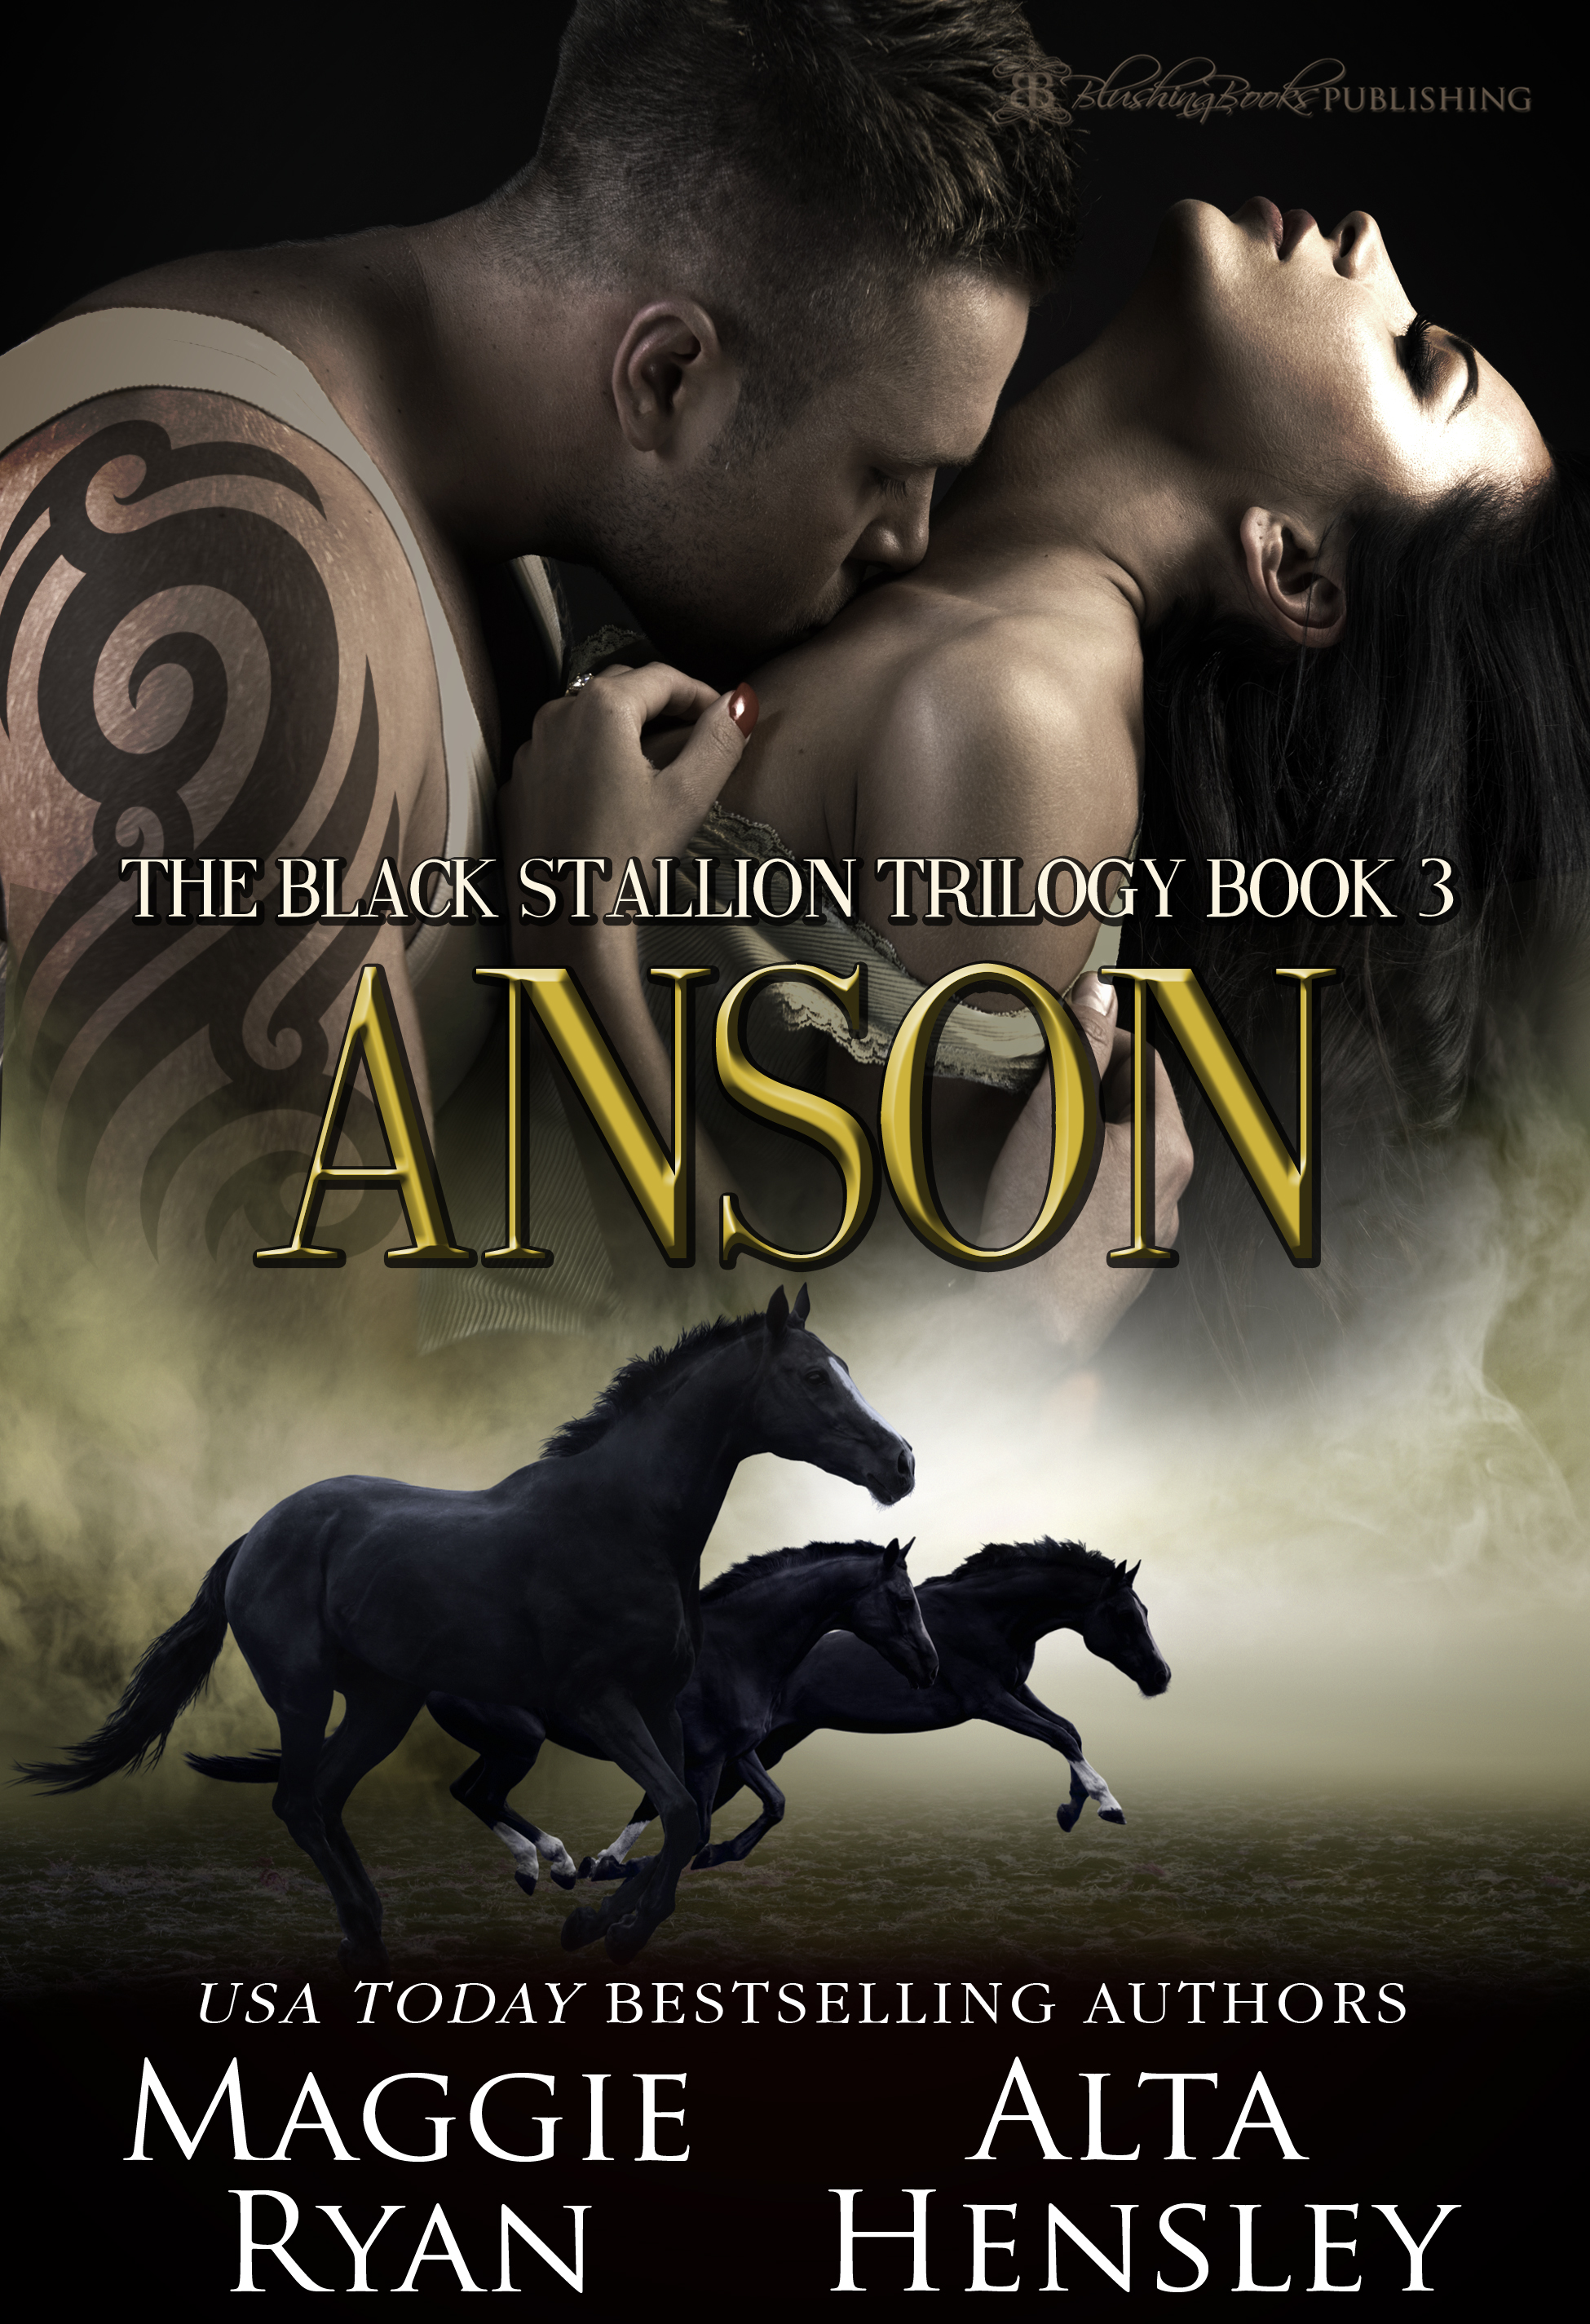 Anson by Alta Hensley, Maggie Ryan